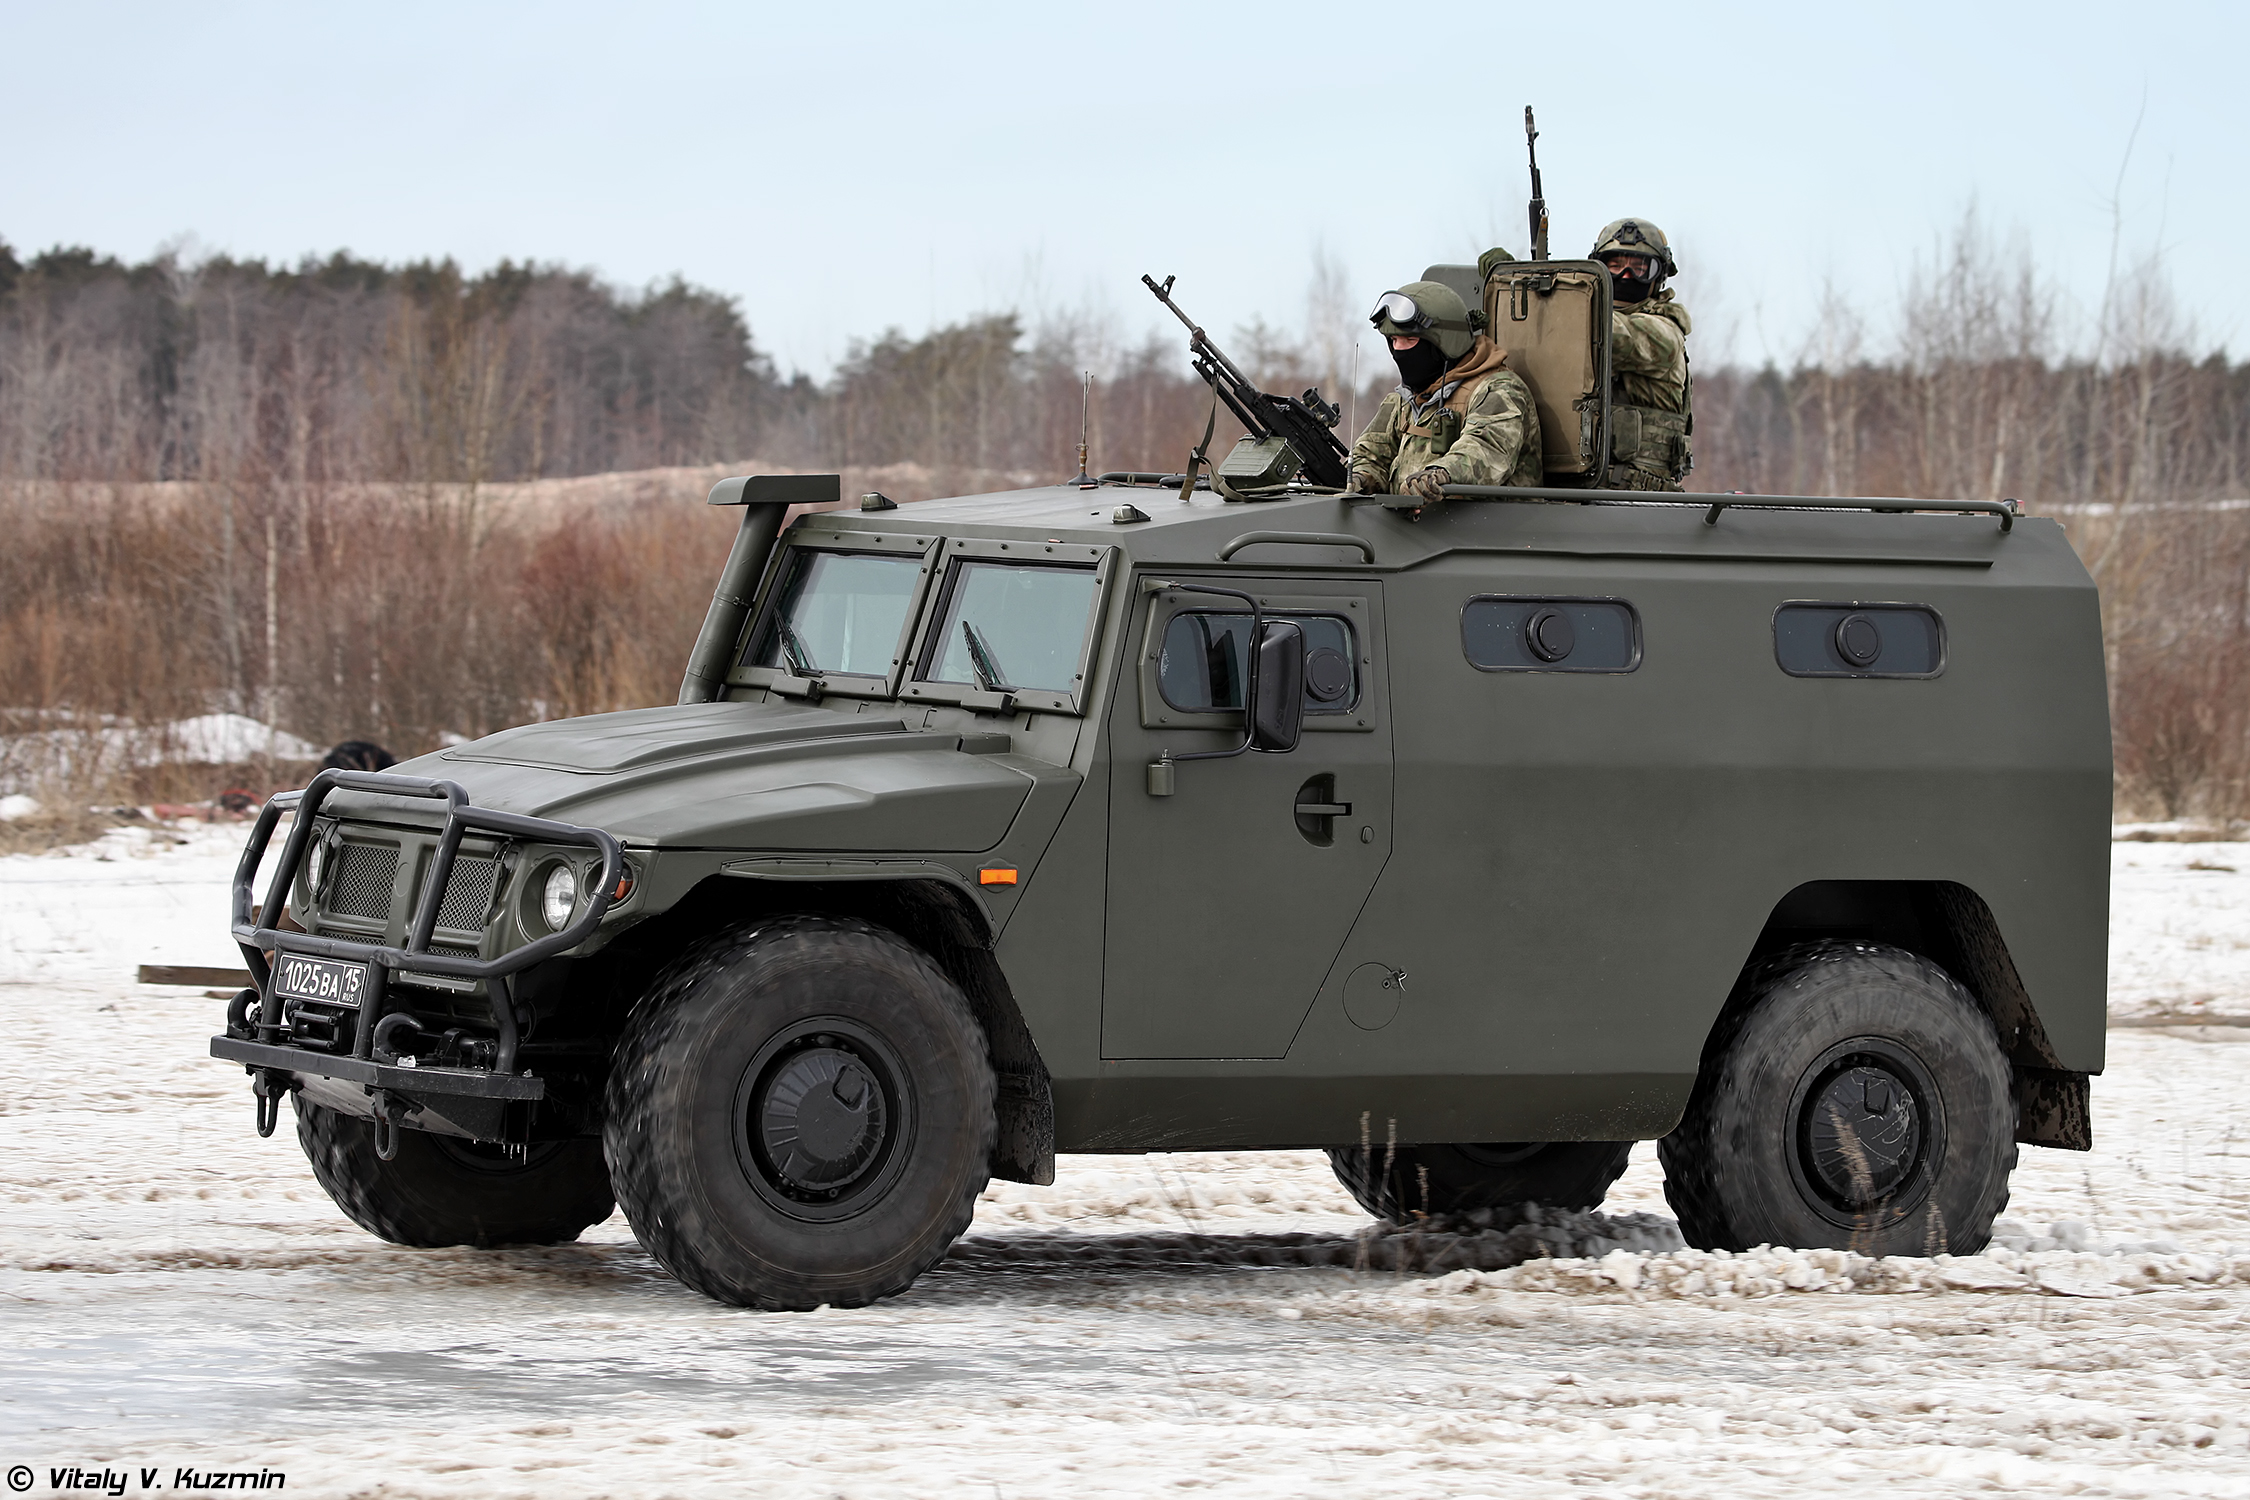 Armored Vehicles For Sale >> Gaz Tigr Wikipedia